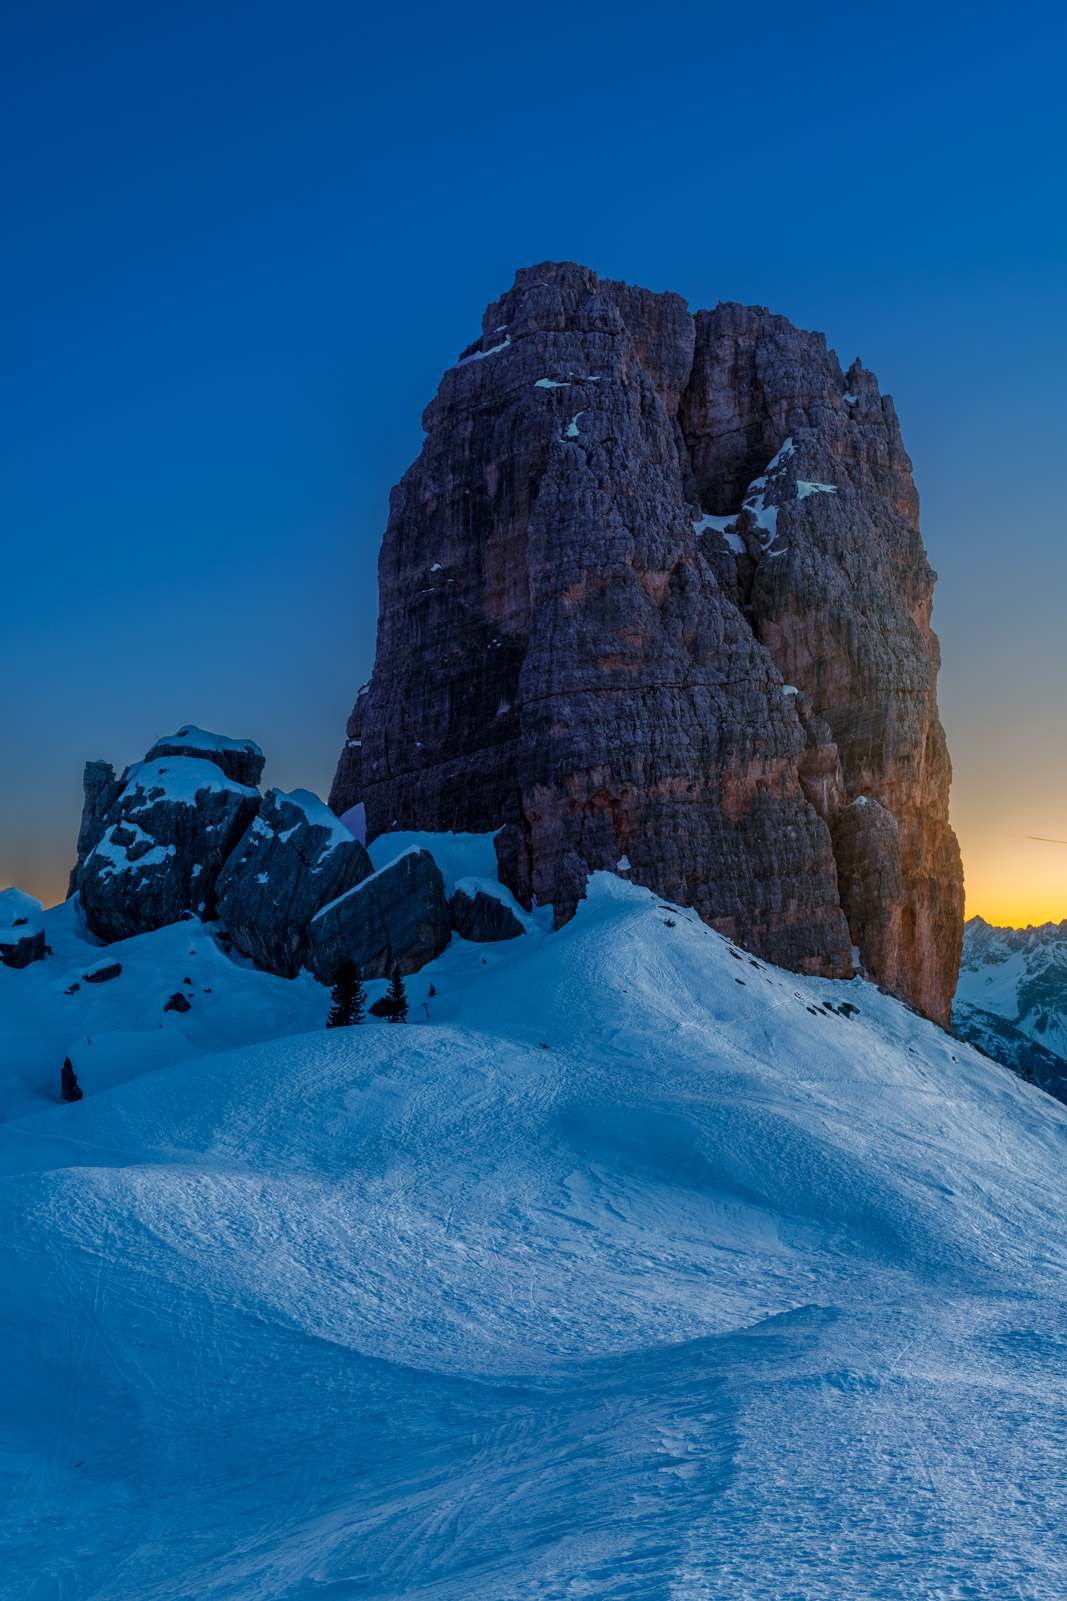 Italy, Mountains, Dolomites, Sunrise, Rock, Formations